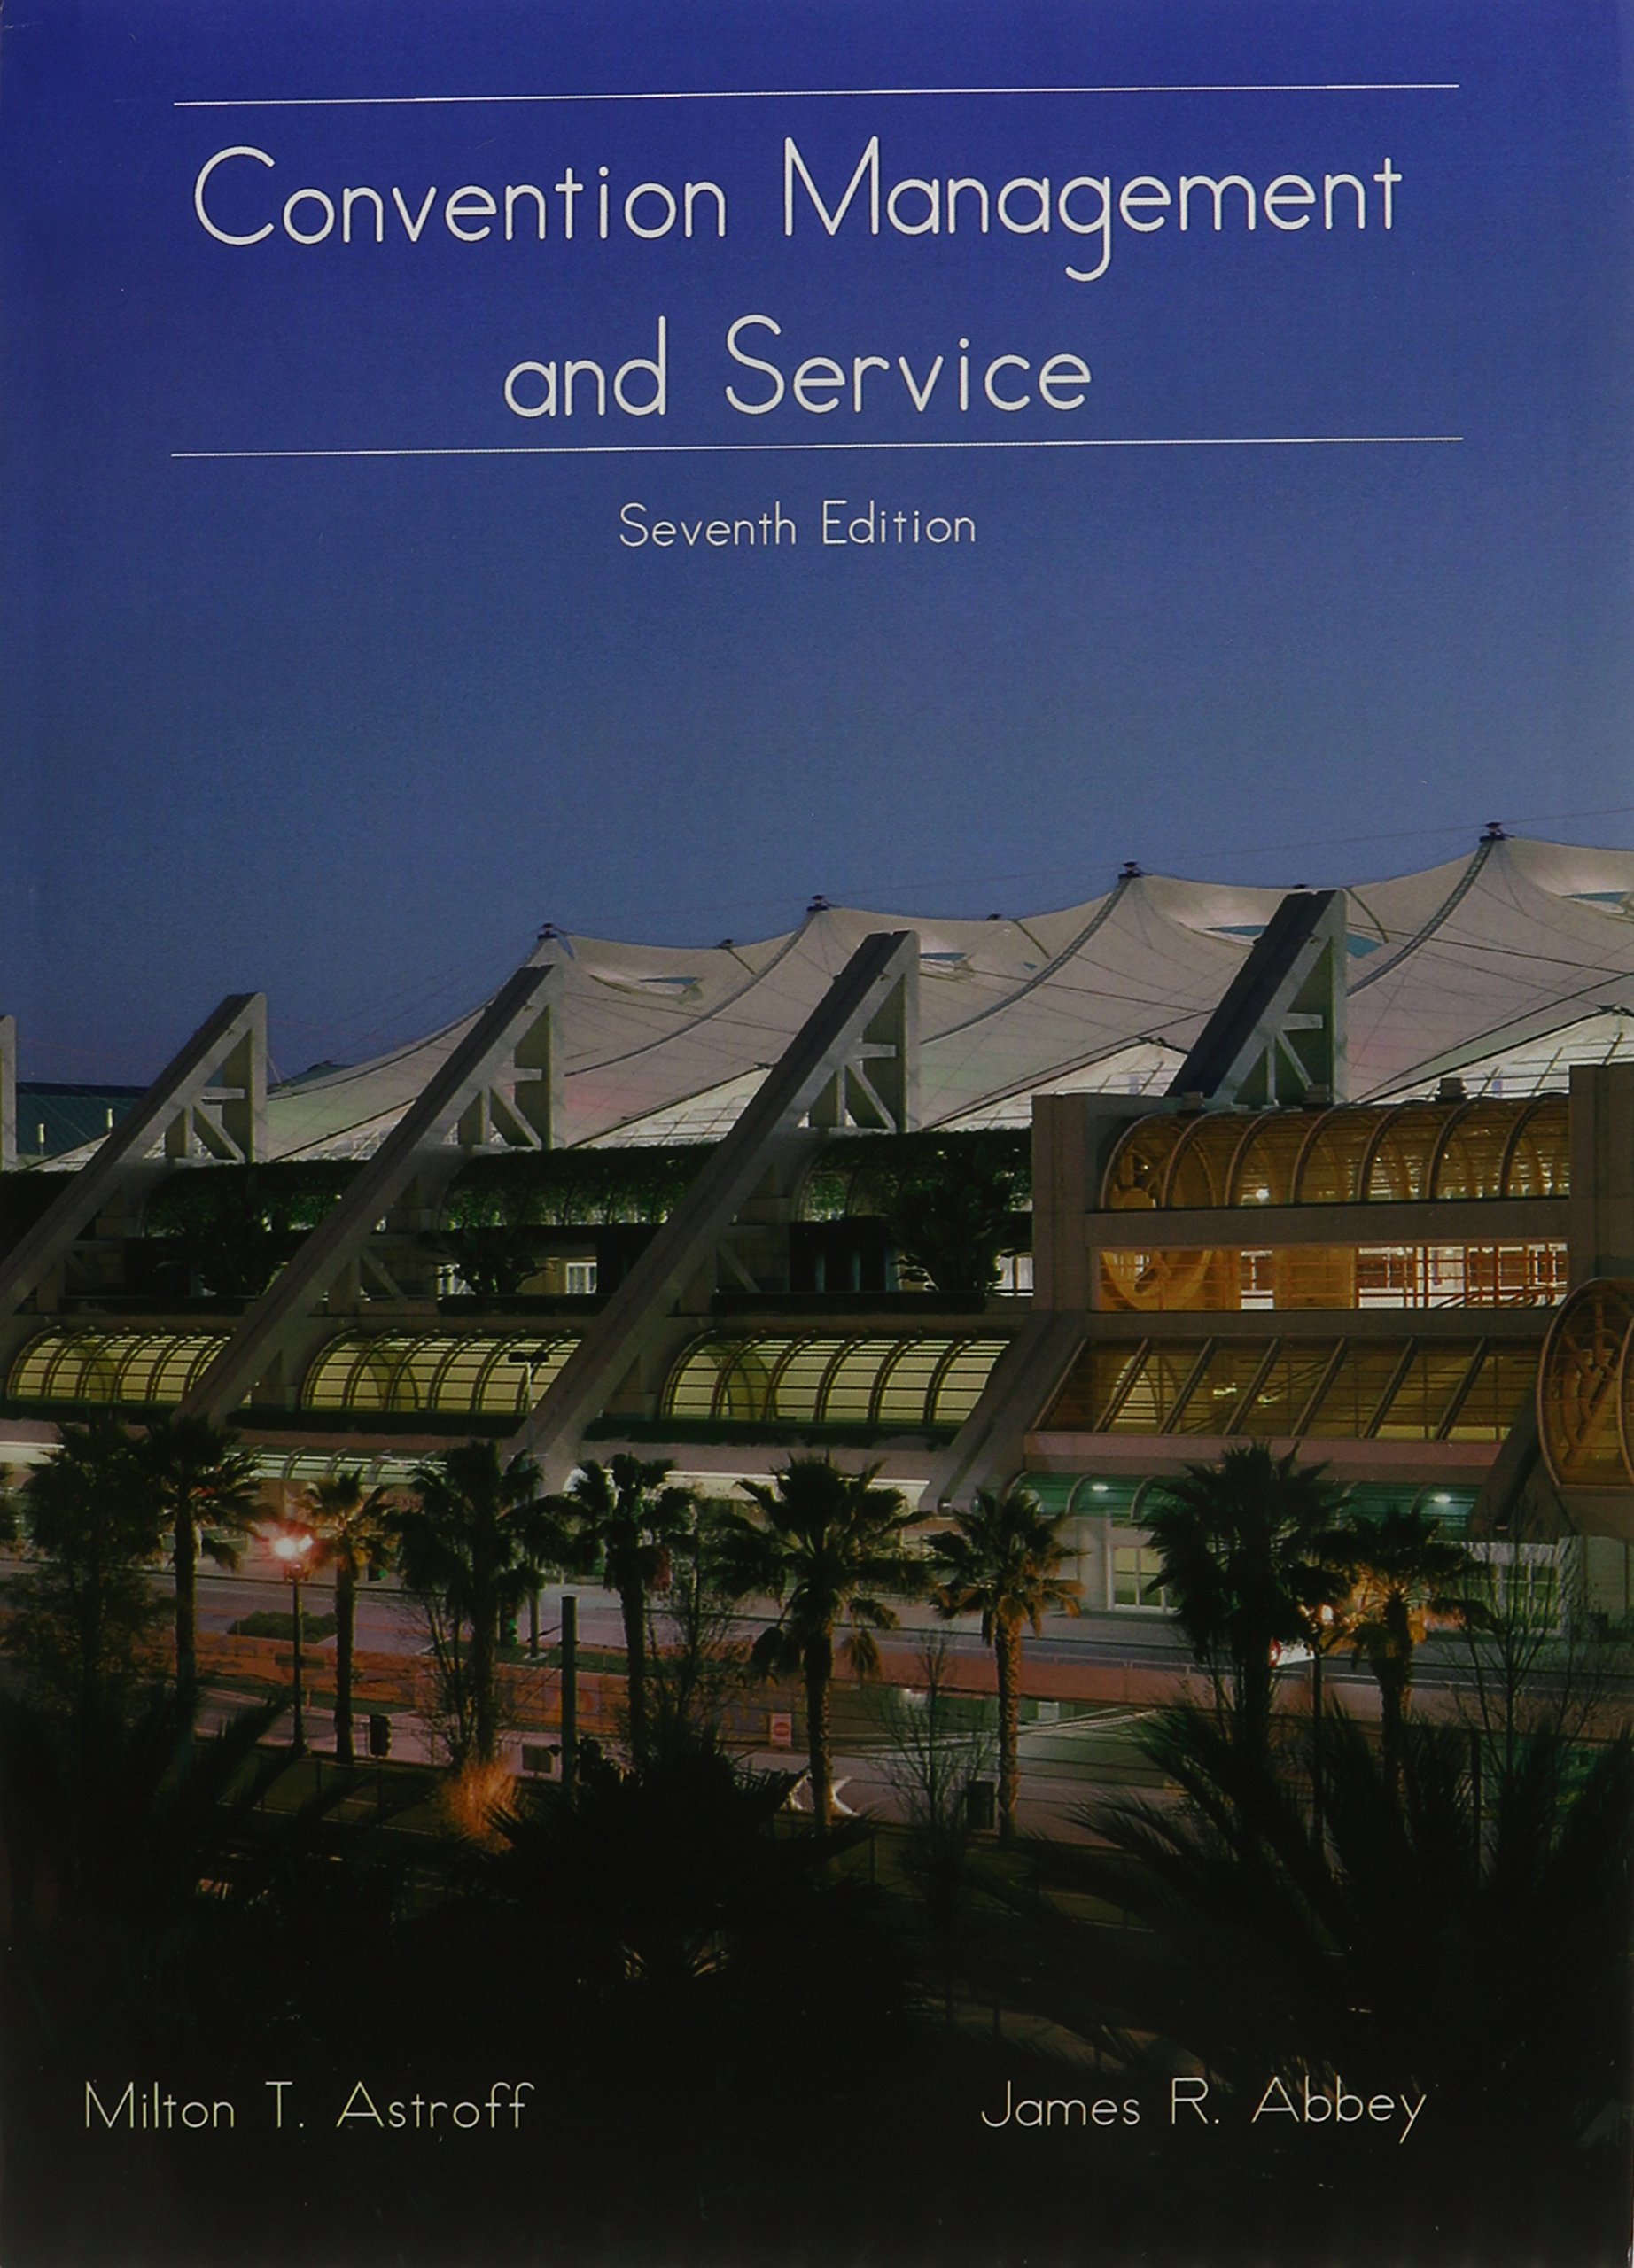 Convention Management and Service: Astroff: 9780866122801: Amazon.com: Books